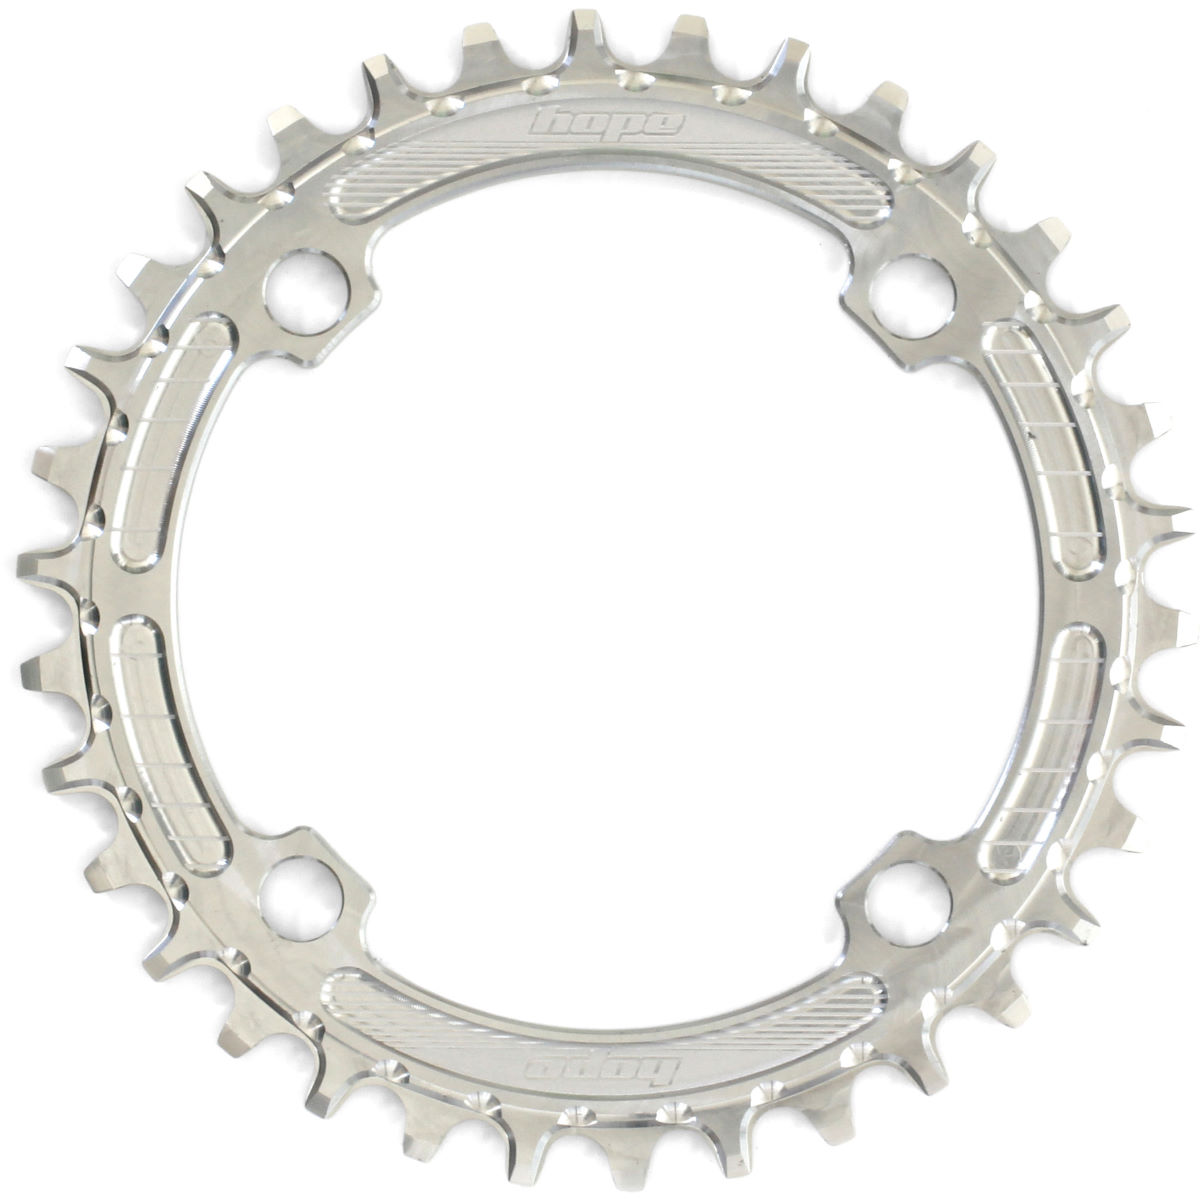 Bague de blocage Hope Retainer Narrow/Wide (30 dents) - 34T 58